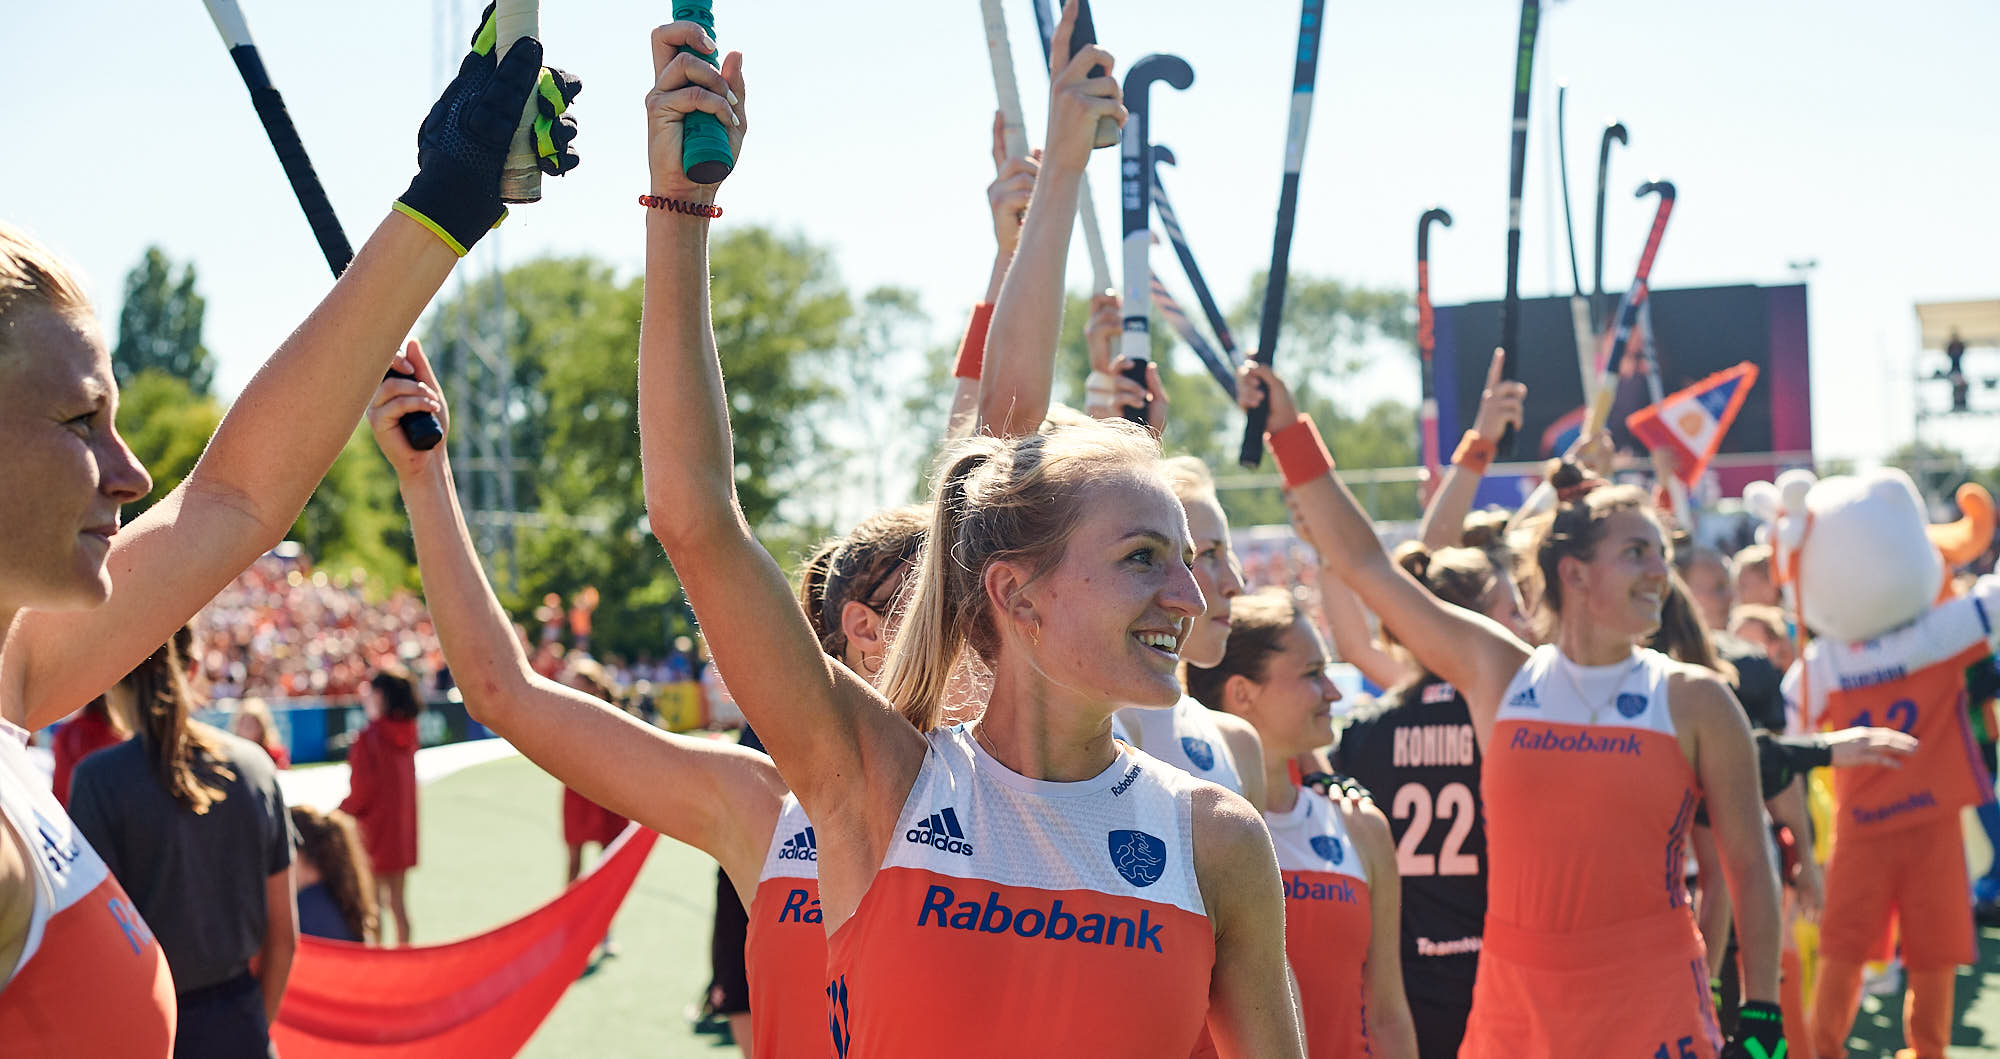 Holland national hockey team players including Sanne Koolen before FIH Pro league finals in Amsterdam